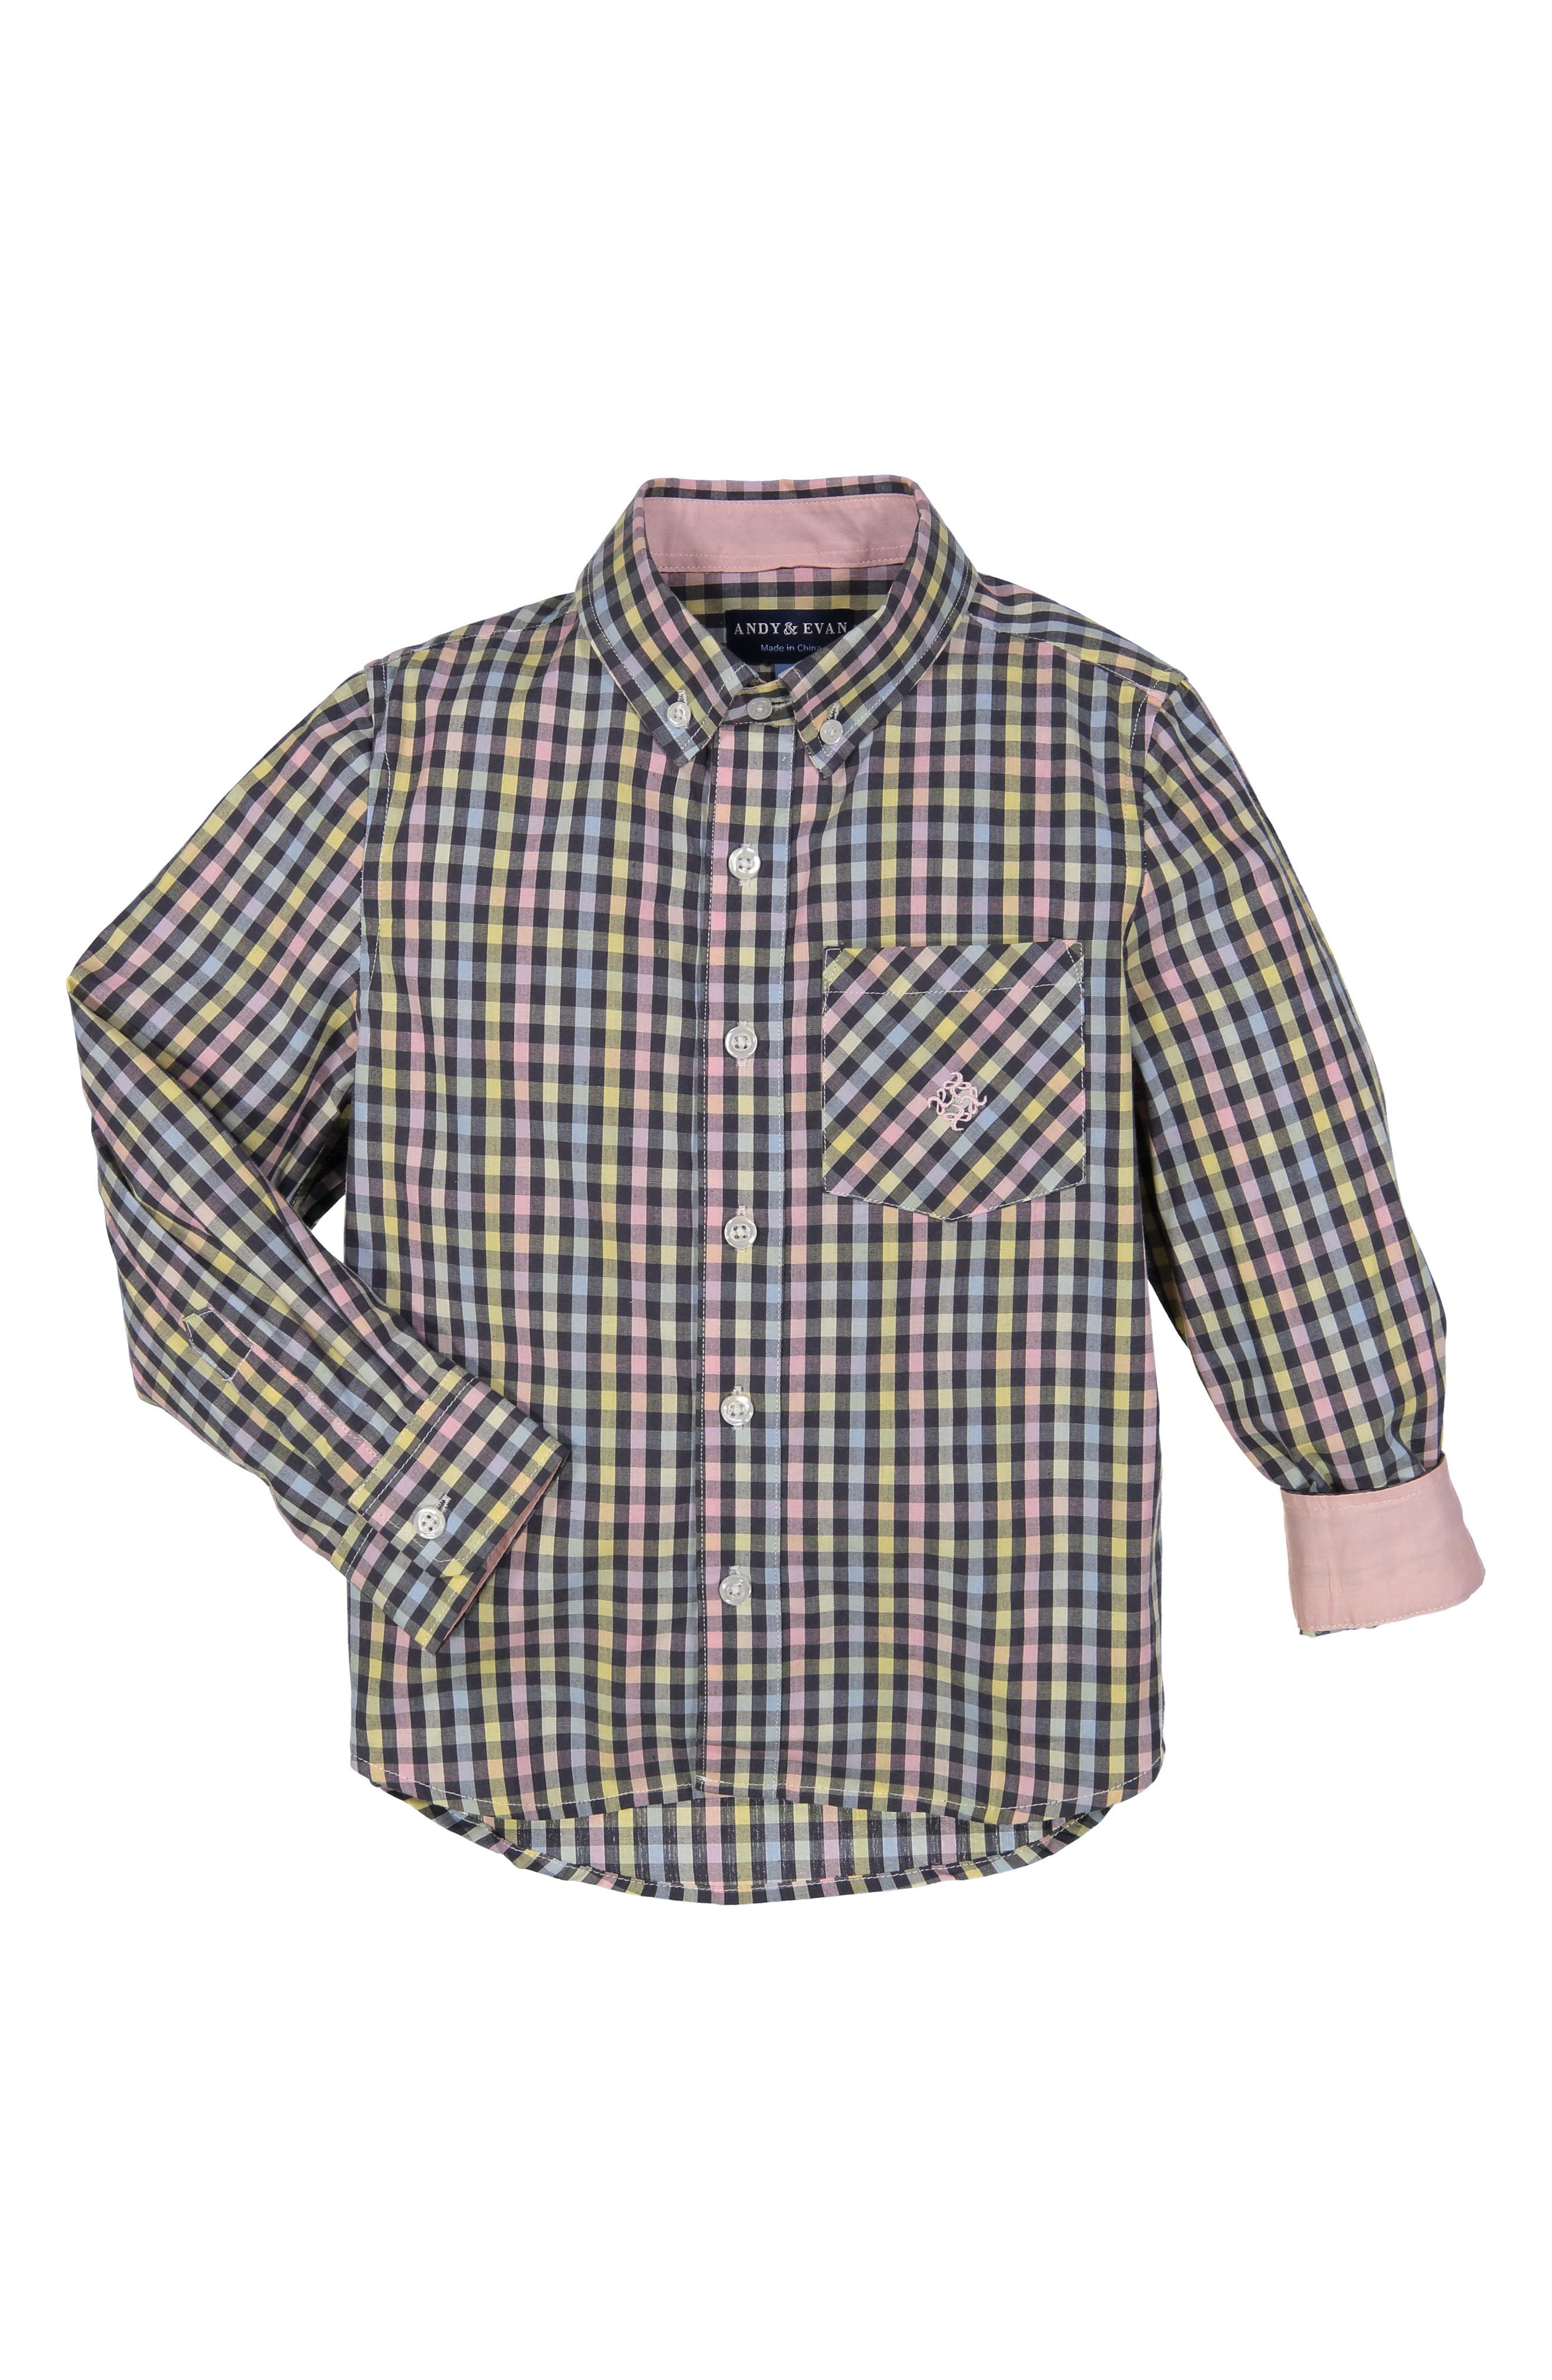 Gingham Check Woven Shirt,                         Main,                         color, 680